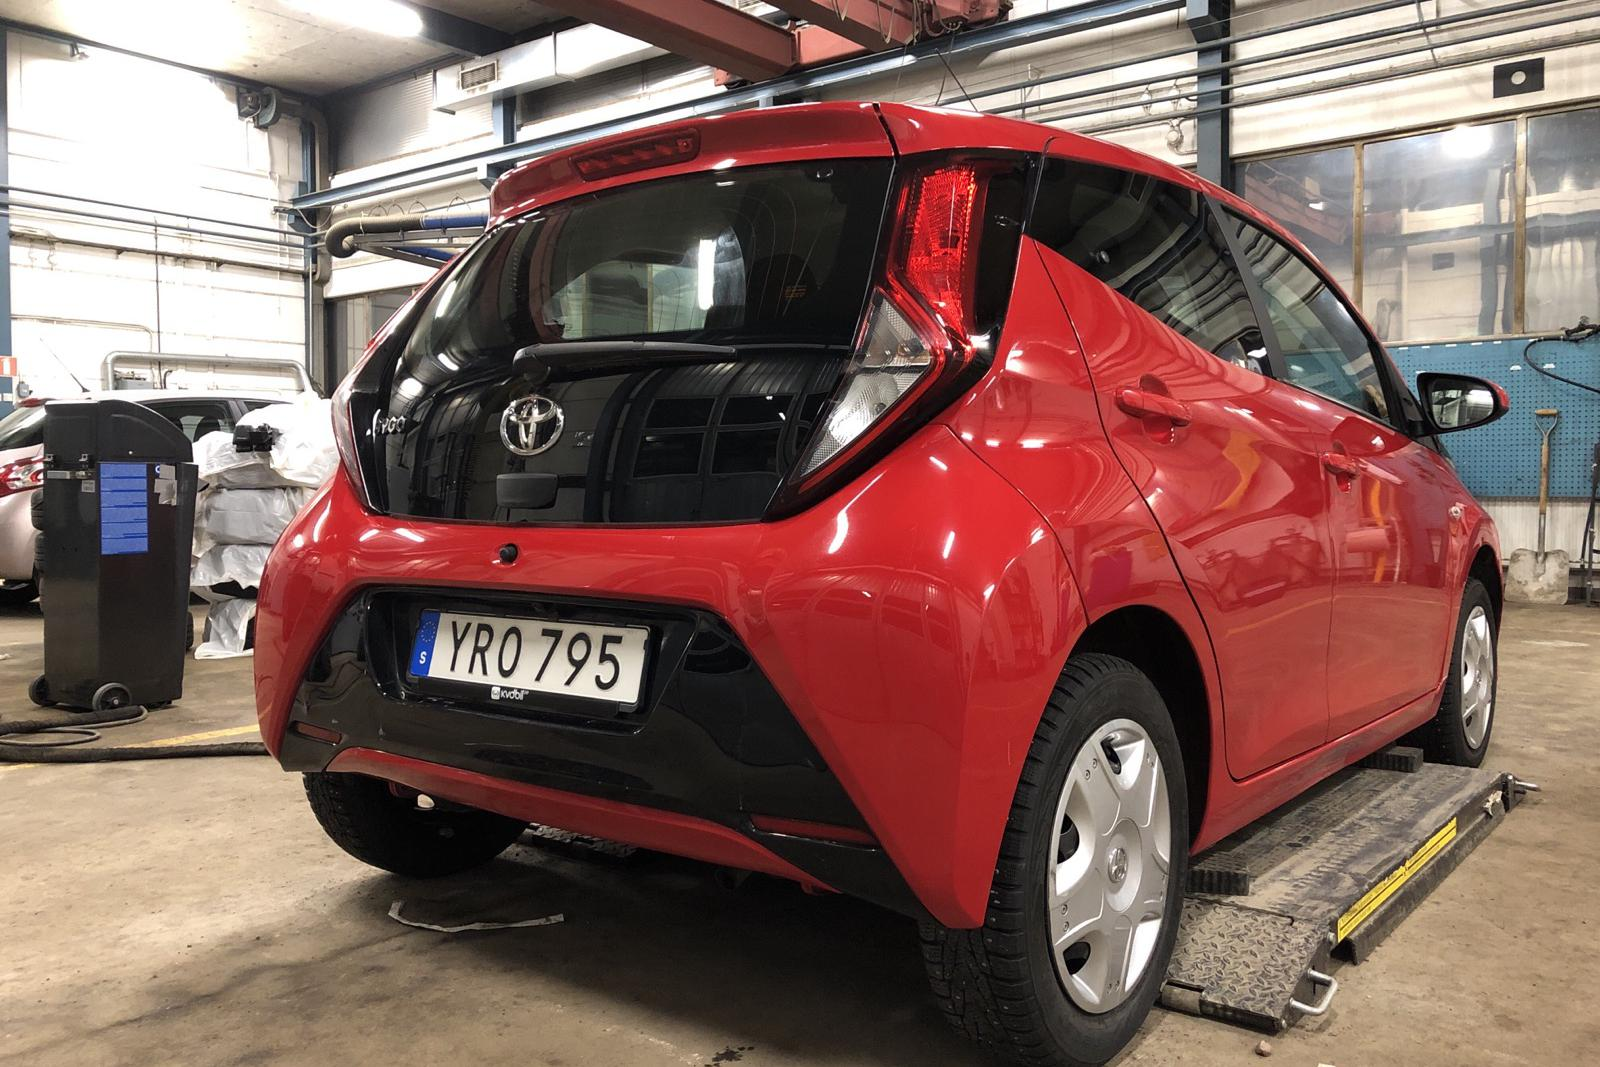 Toyota Aygo 1.0 5dr (72hk) - 64 410 km - Manual - red - 2019